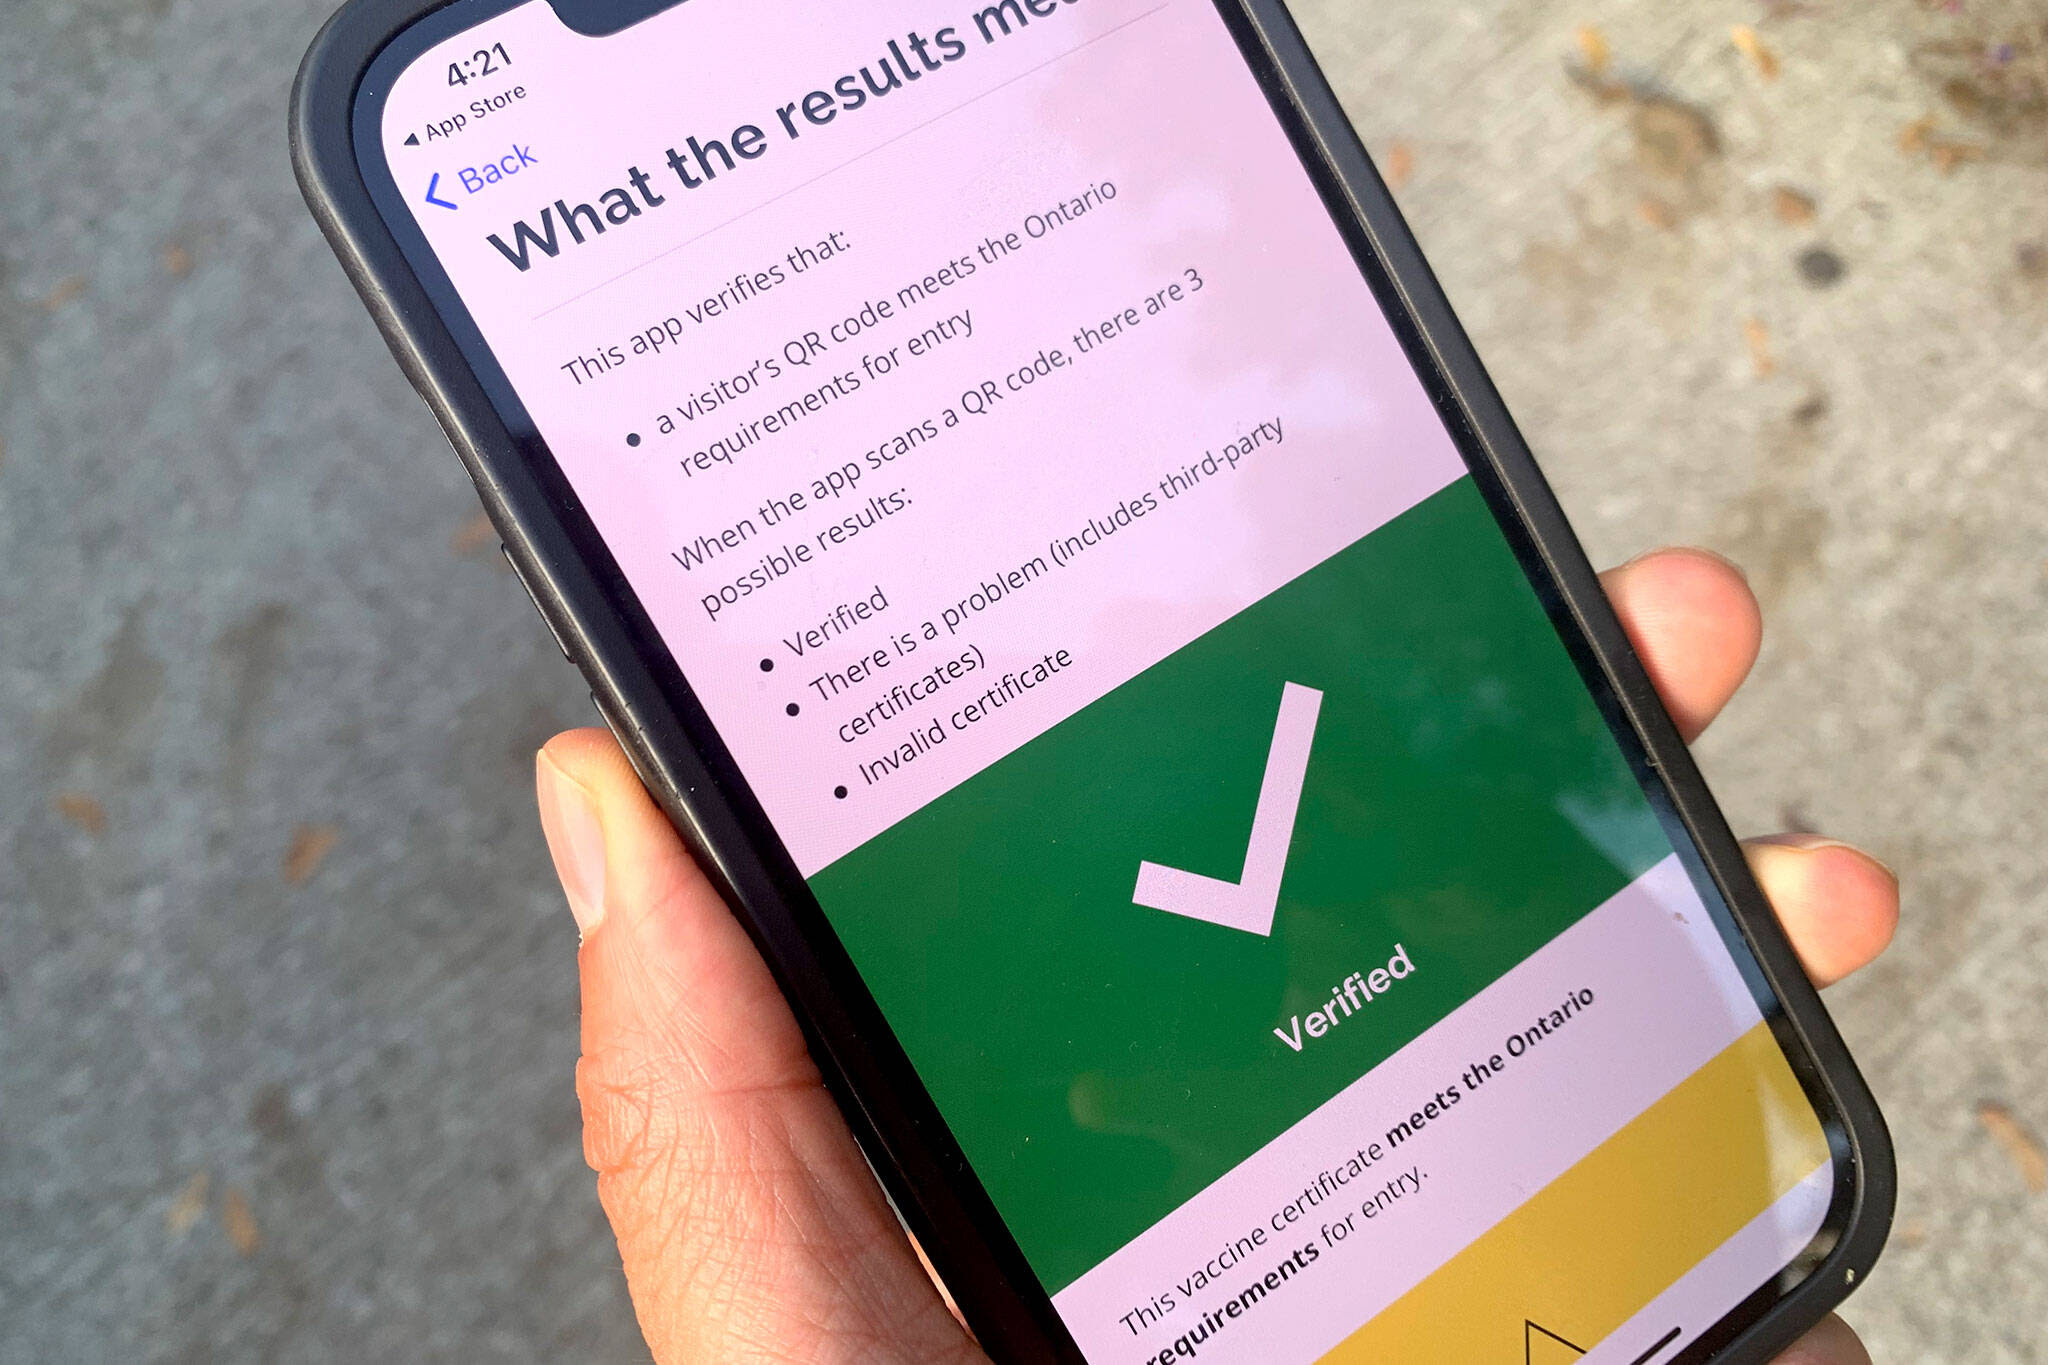 Ontario vaccine passport app launches early and people are finding it super confusing